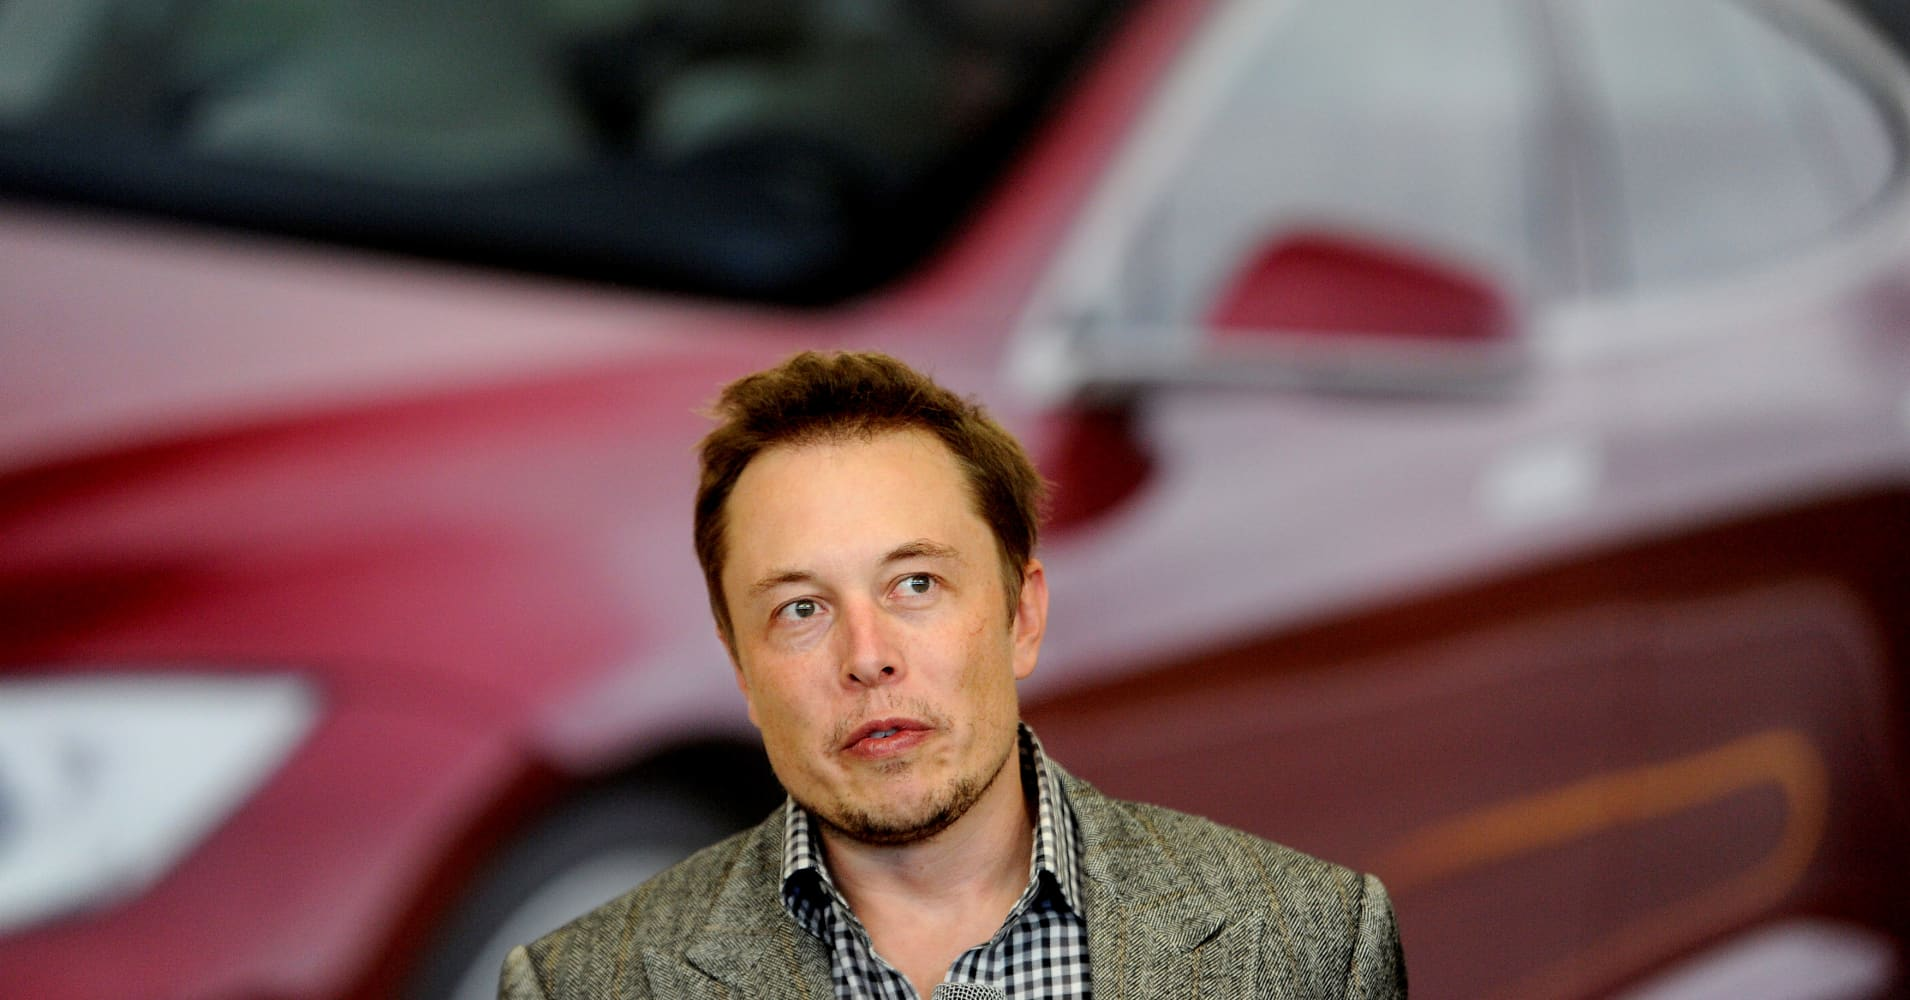 If you invested $1,000 in Tesla in 2010, here's how much you'd have now